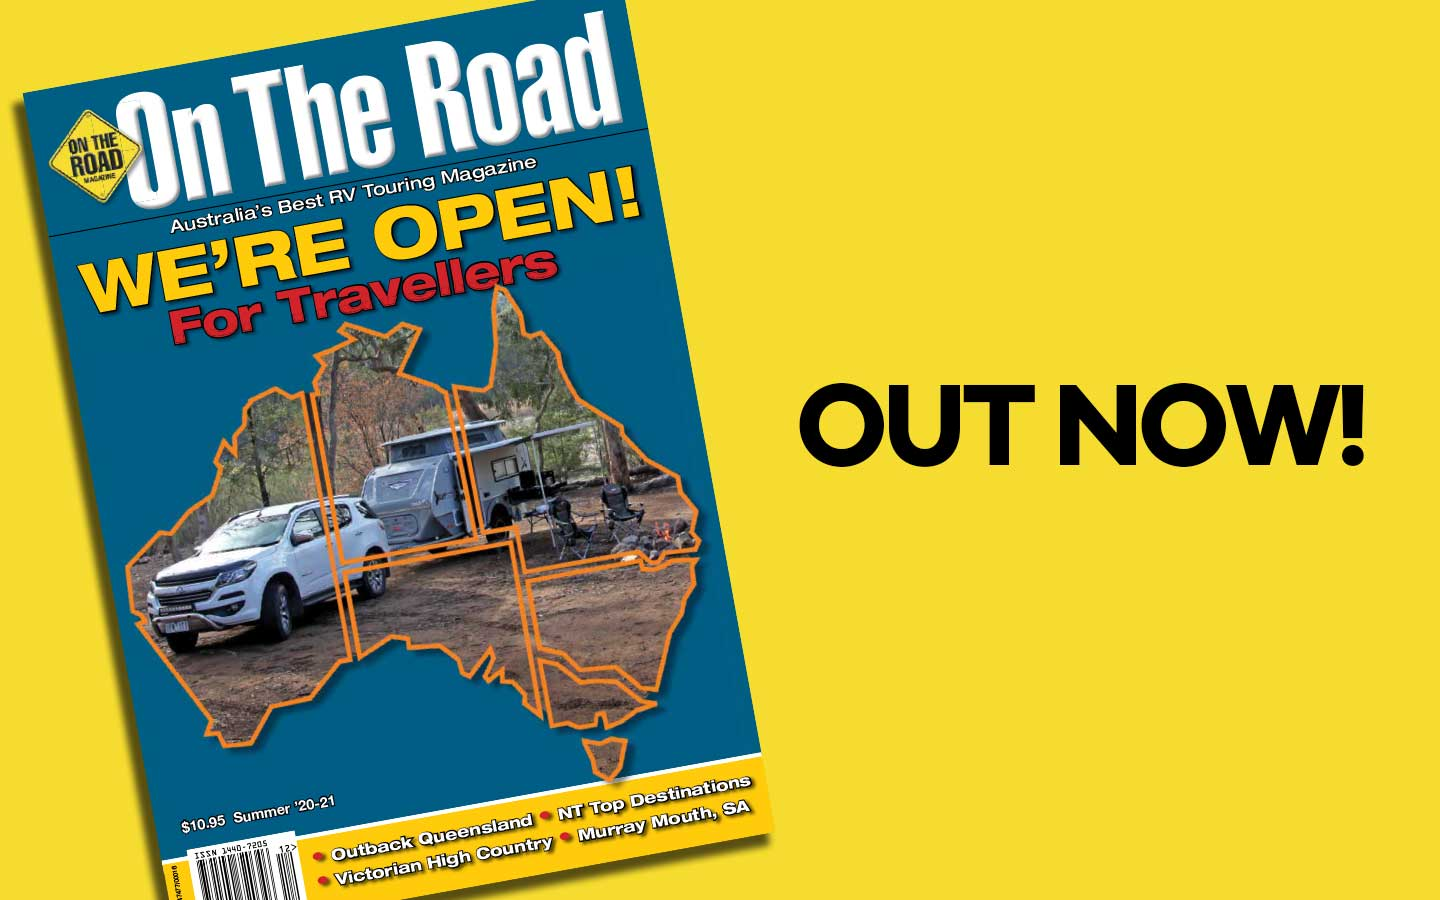 On The Road Magazine - Summer 2020 Out Now